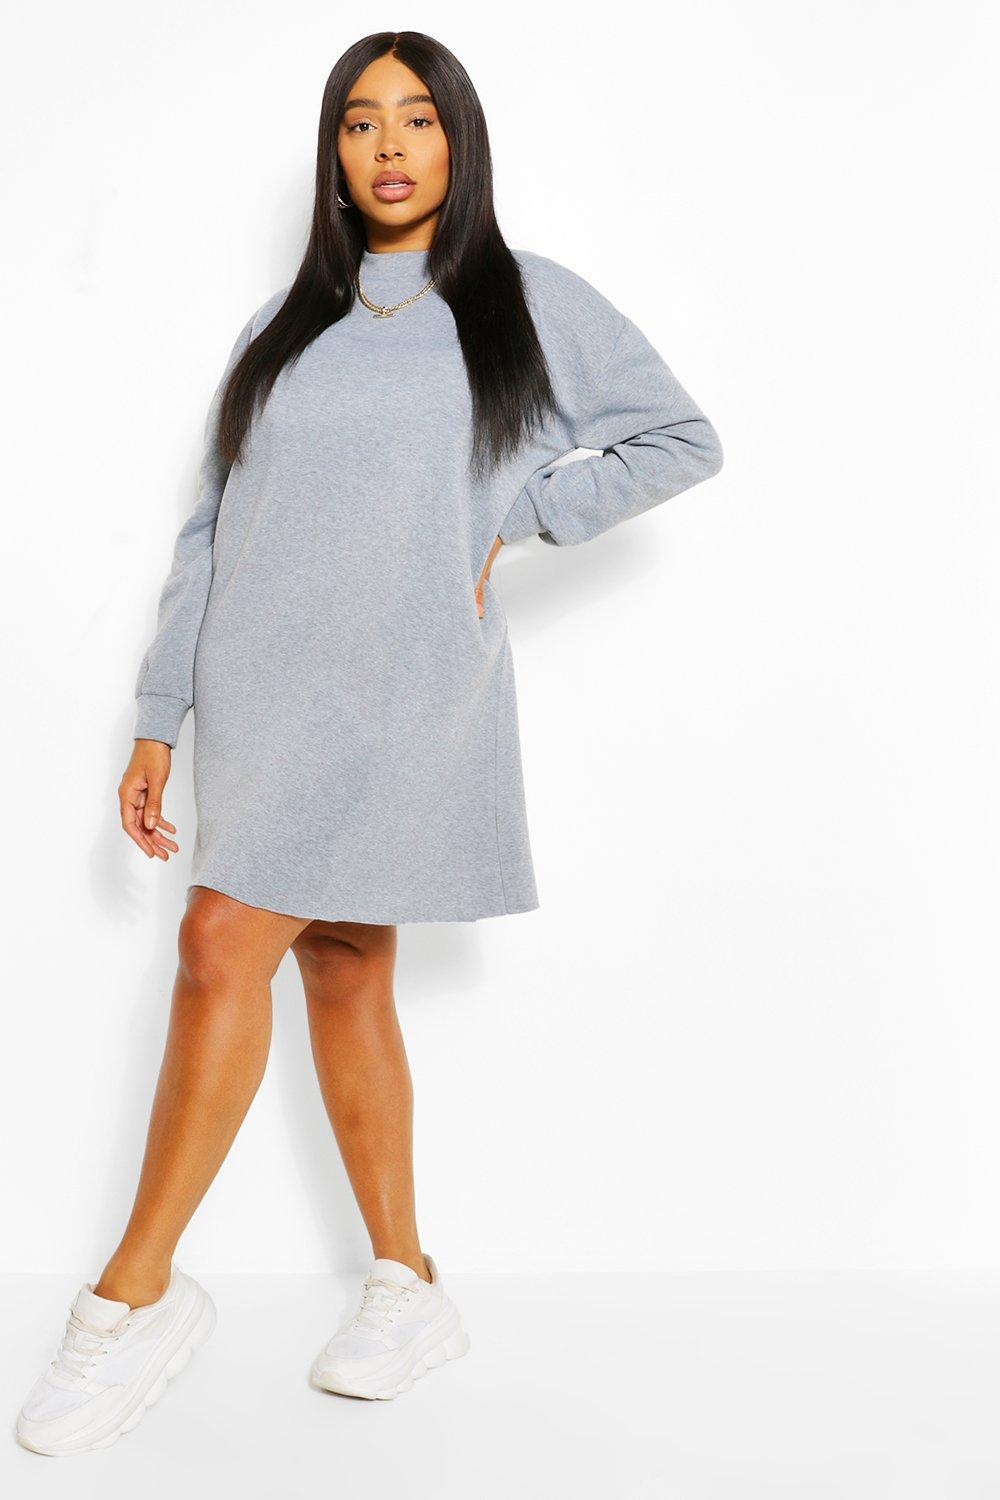 Plus Oversized Basic Sweat Dress 6